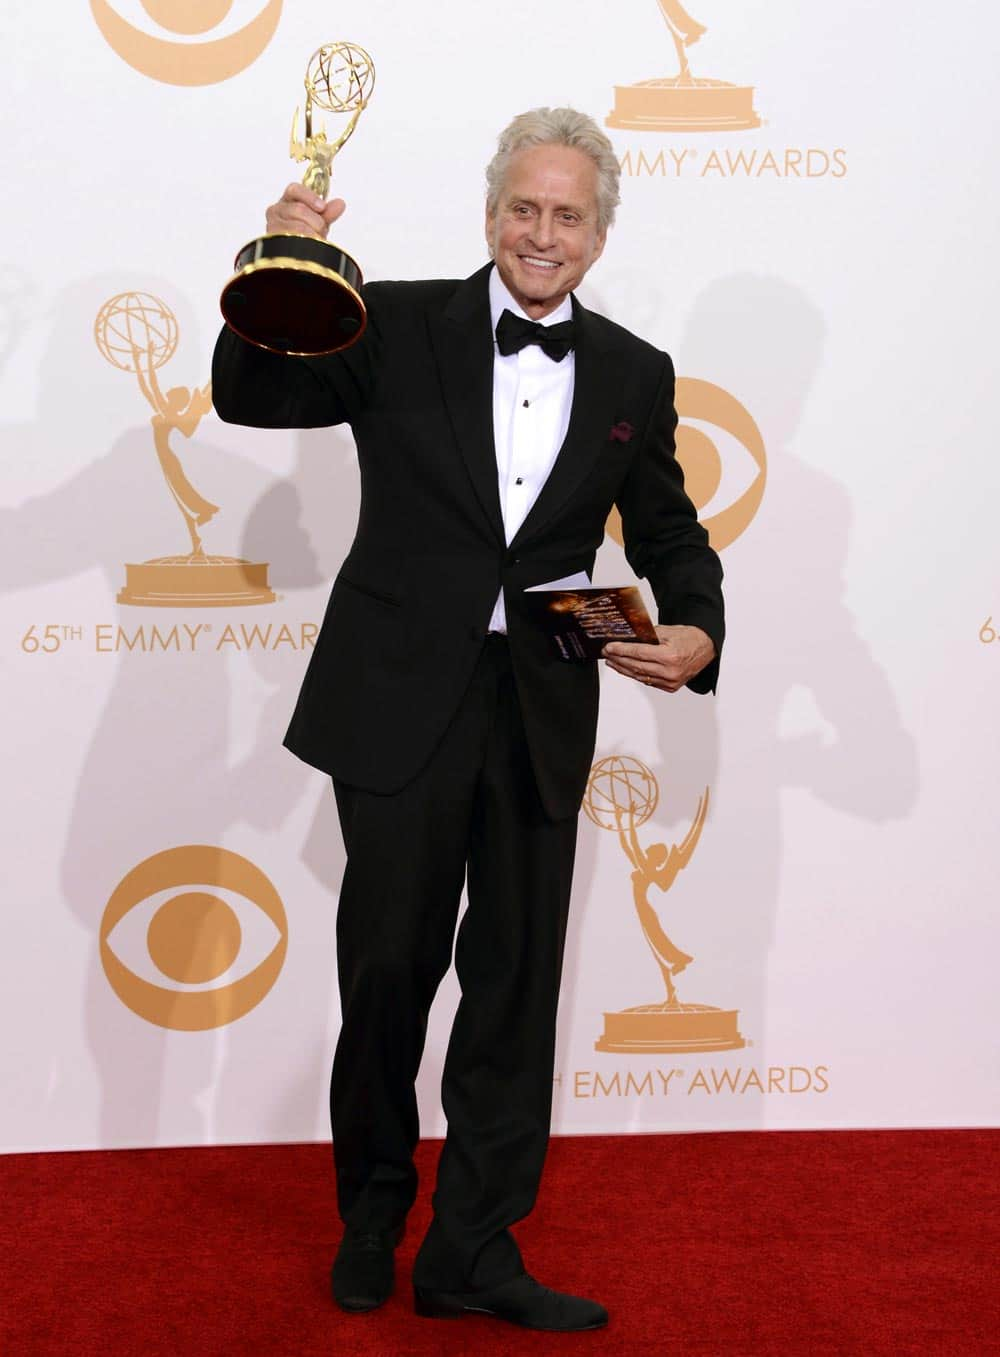 Michael Douglas, winner of the Best Lead Actor in a Miniseries or Movie Award for 'Behind The Candelabra' poses backstage at the 65th Primetime Emmy Awards at Nokia Theatre.